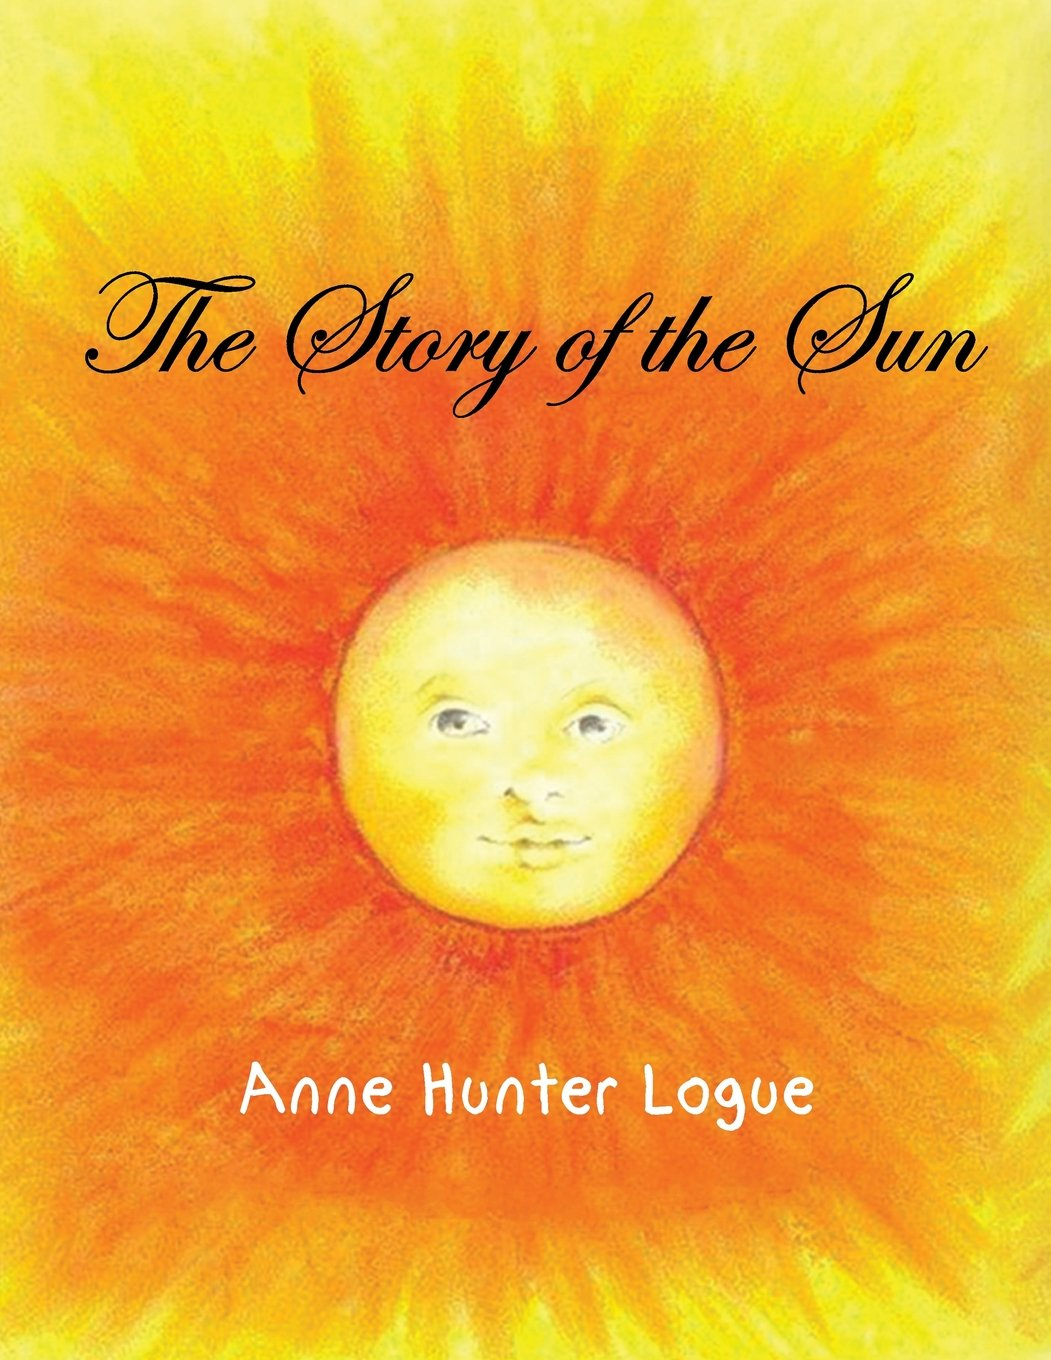 THE STORY OF THE SUN